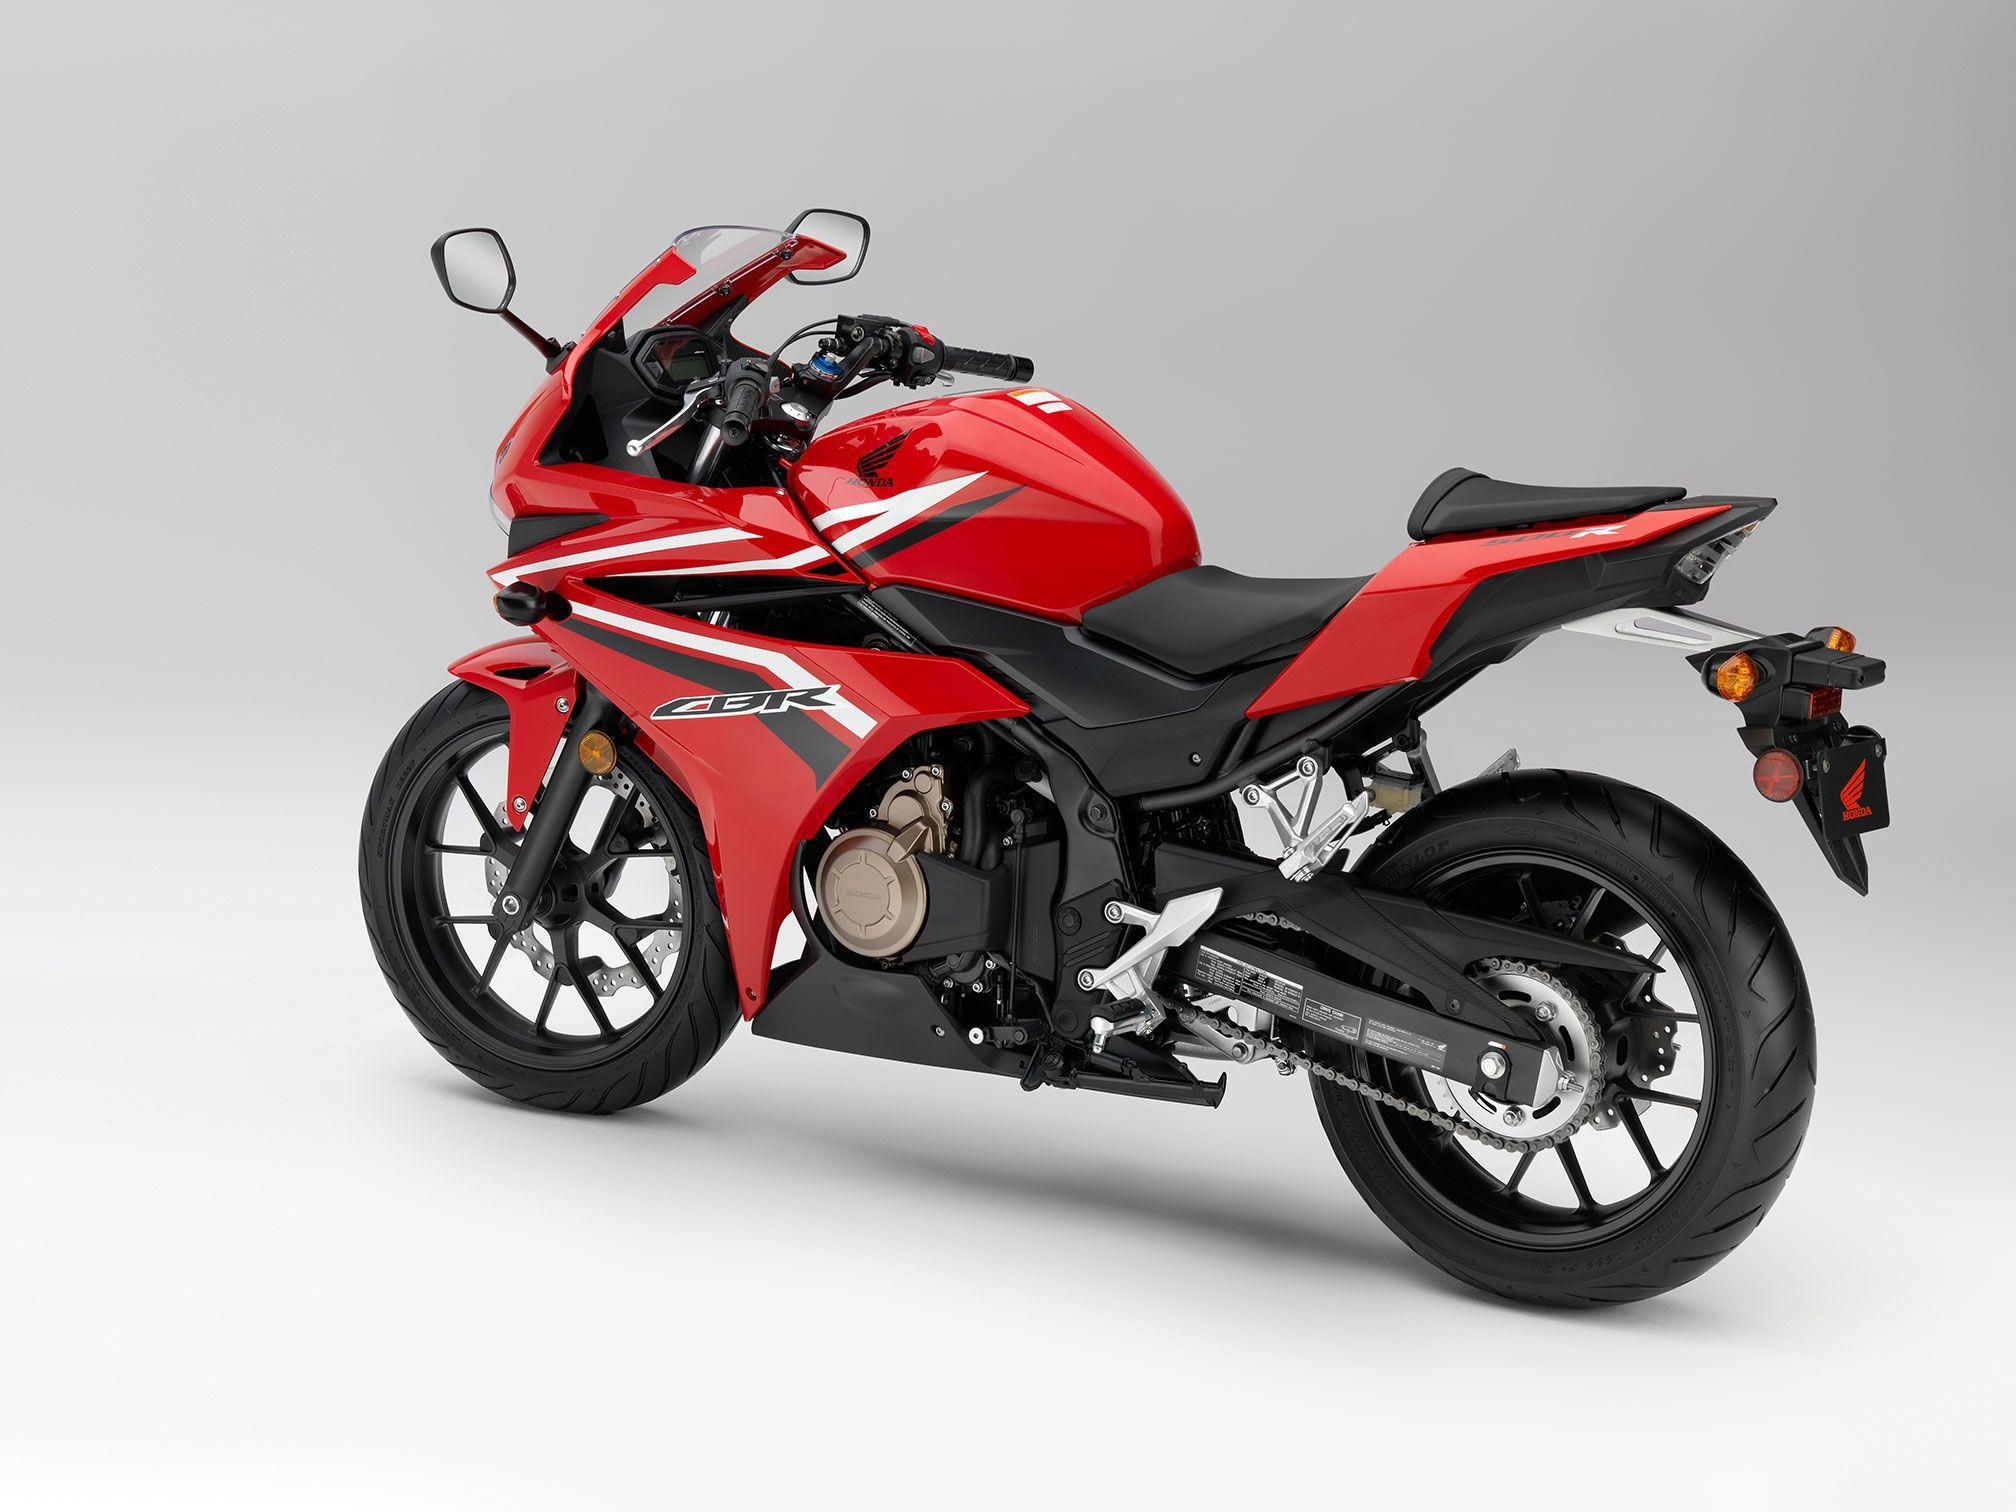 2016 Honda Cbr500r Wallpapers | AutoCarWall